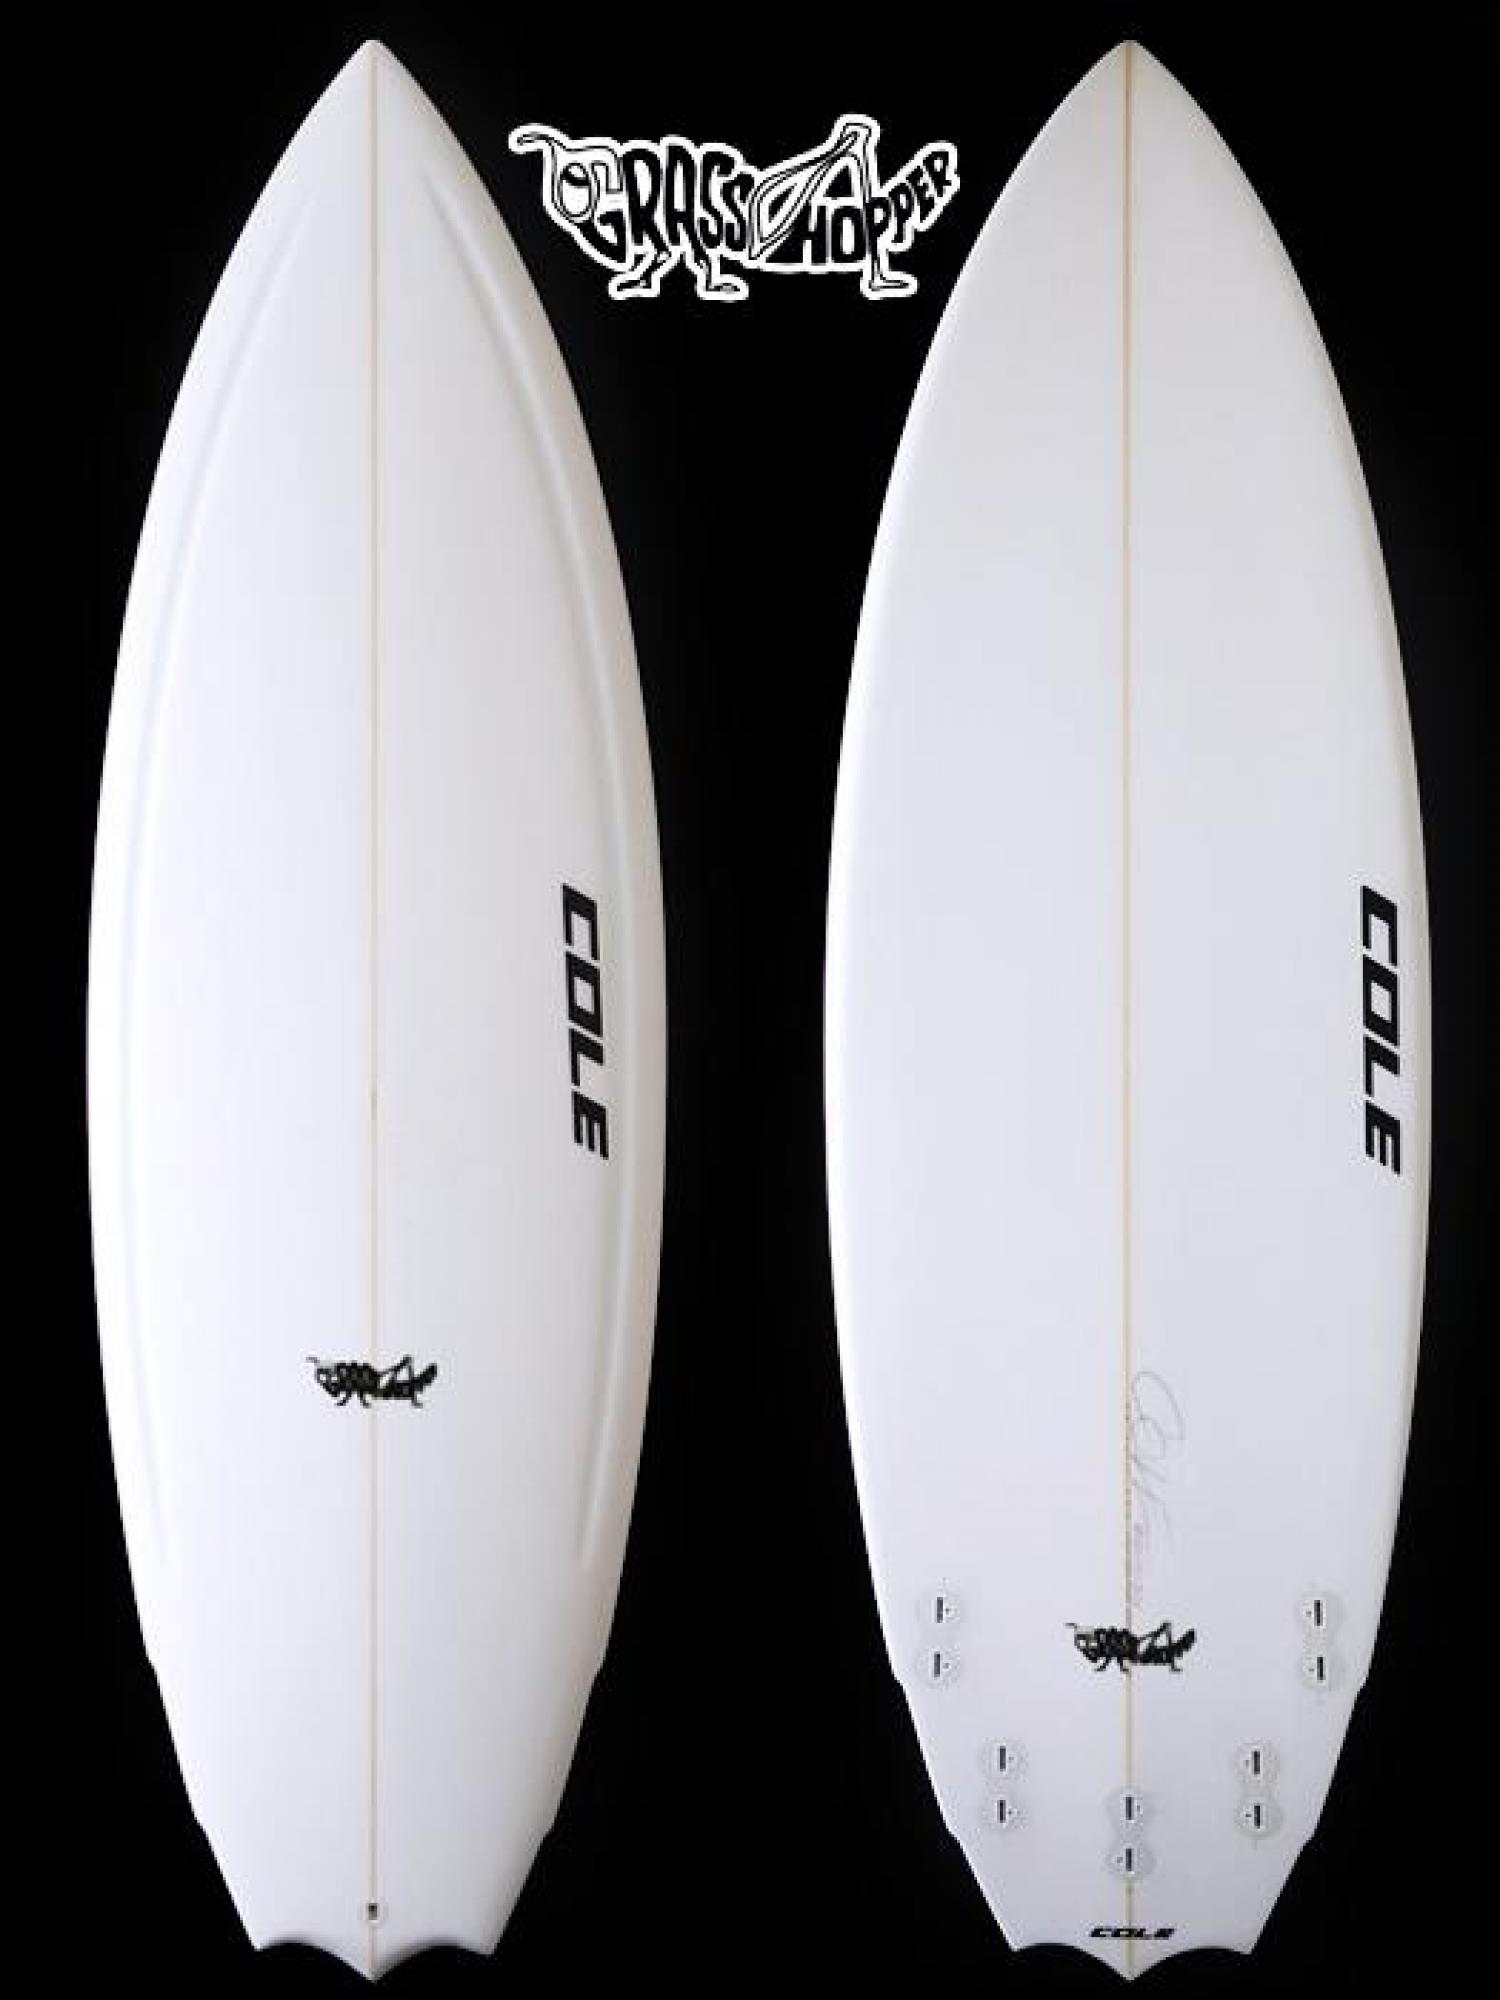 Grasshopper COLE SURFBOARDS Order accepted